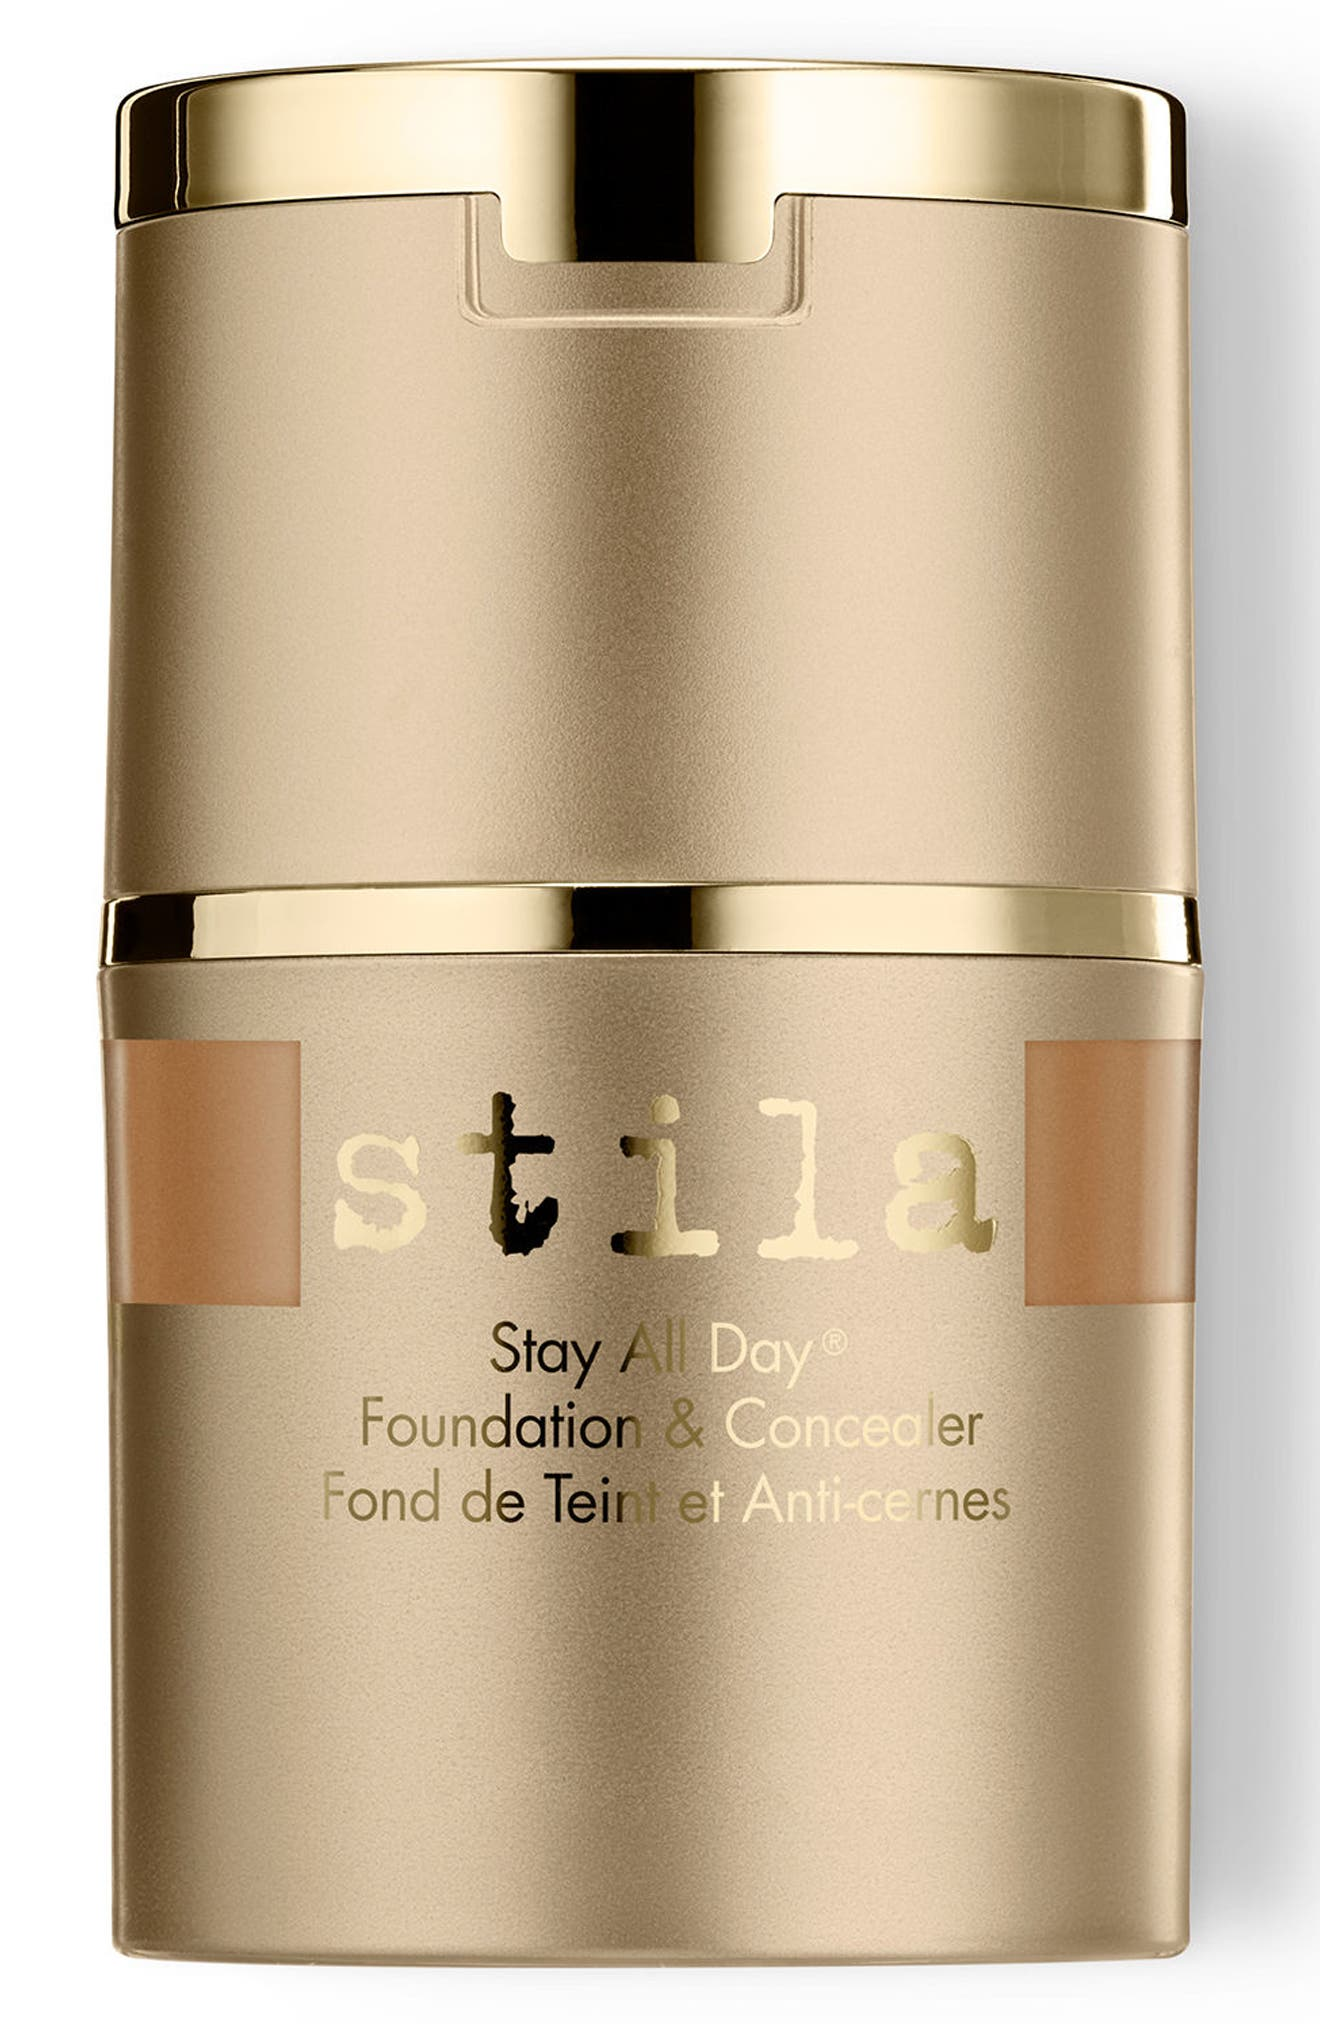 Stay All Day<sup>®</sup> Foundation & Concealer,                             Alternate thumbnail 2, color,                             STAY AD FOUND CONC CARAMEL 12